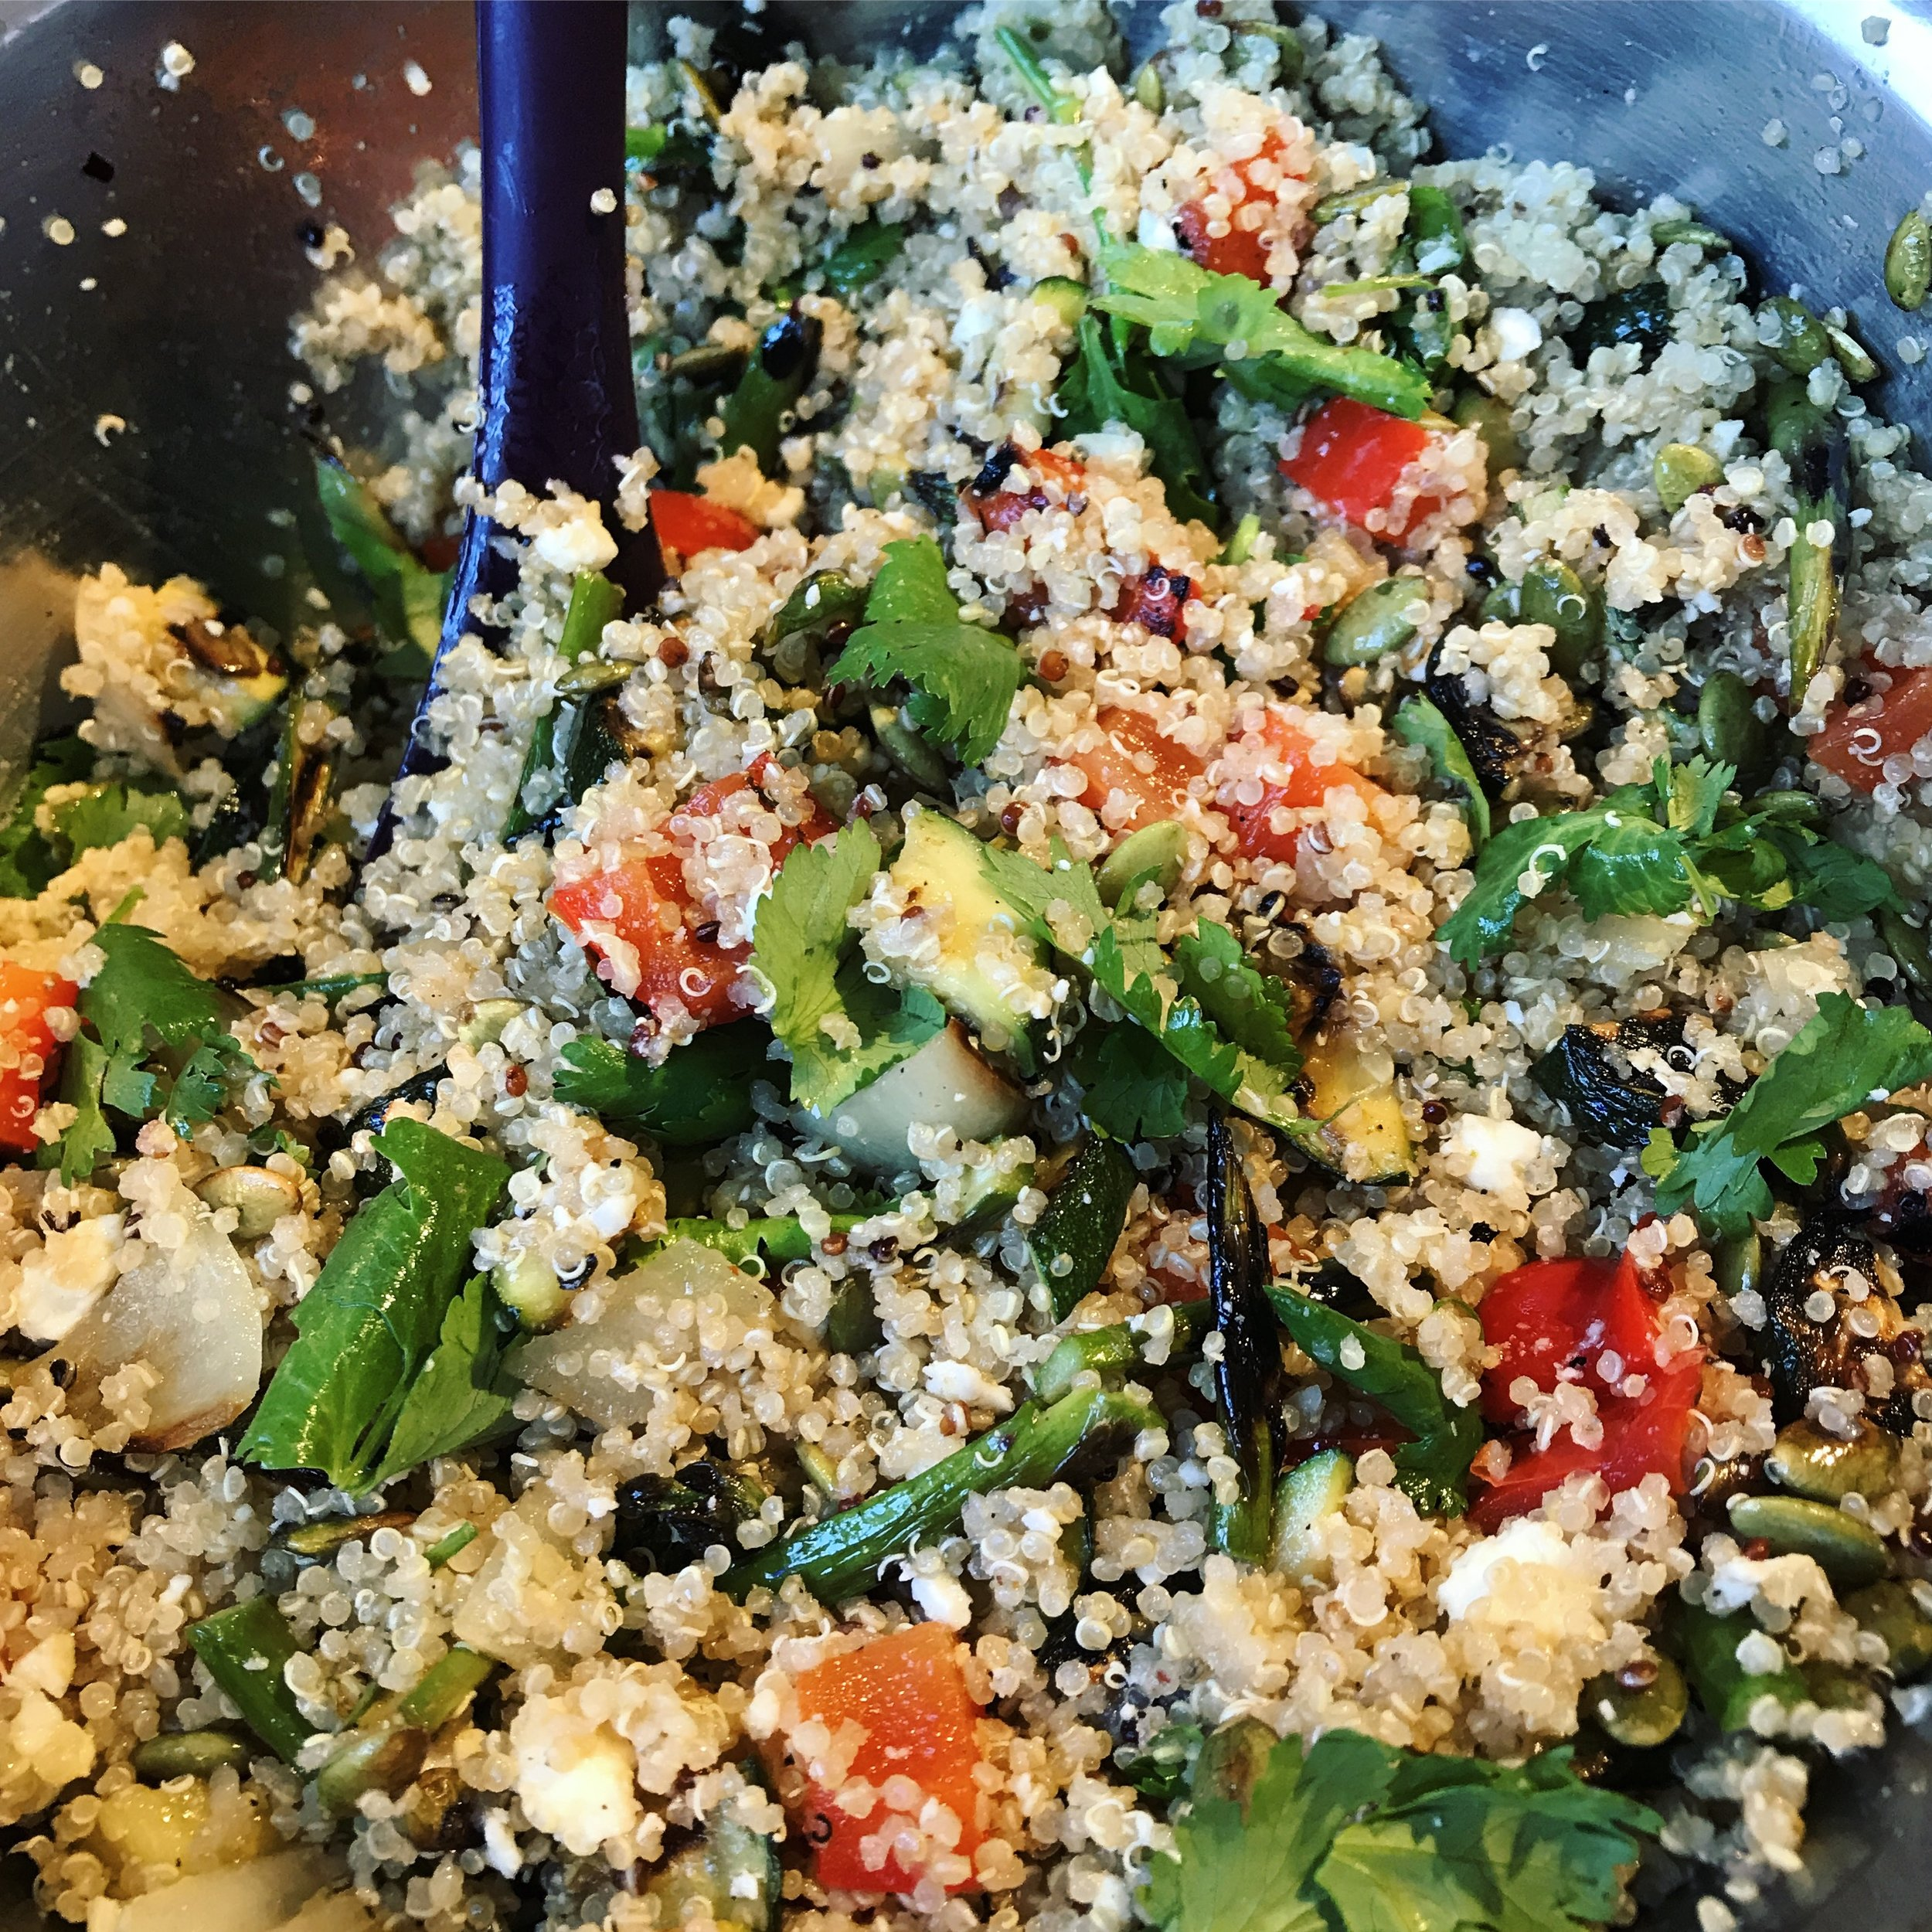 Cooked quinoa seeds become fluffy and creamy, yet maintains a slight crunch. It has a delicate and subtly nutty flavor, versatile for breakfast (as a cereal), lunch (as a salad) or dinner (as a side).